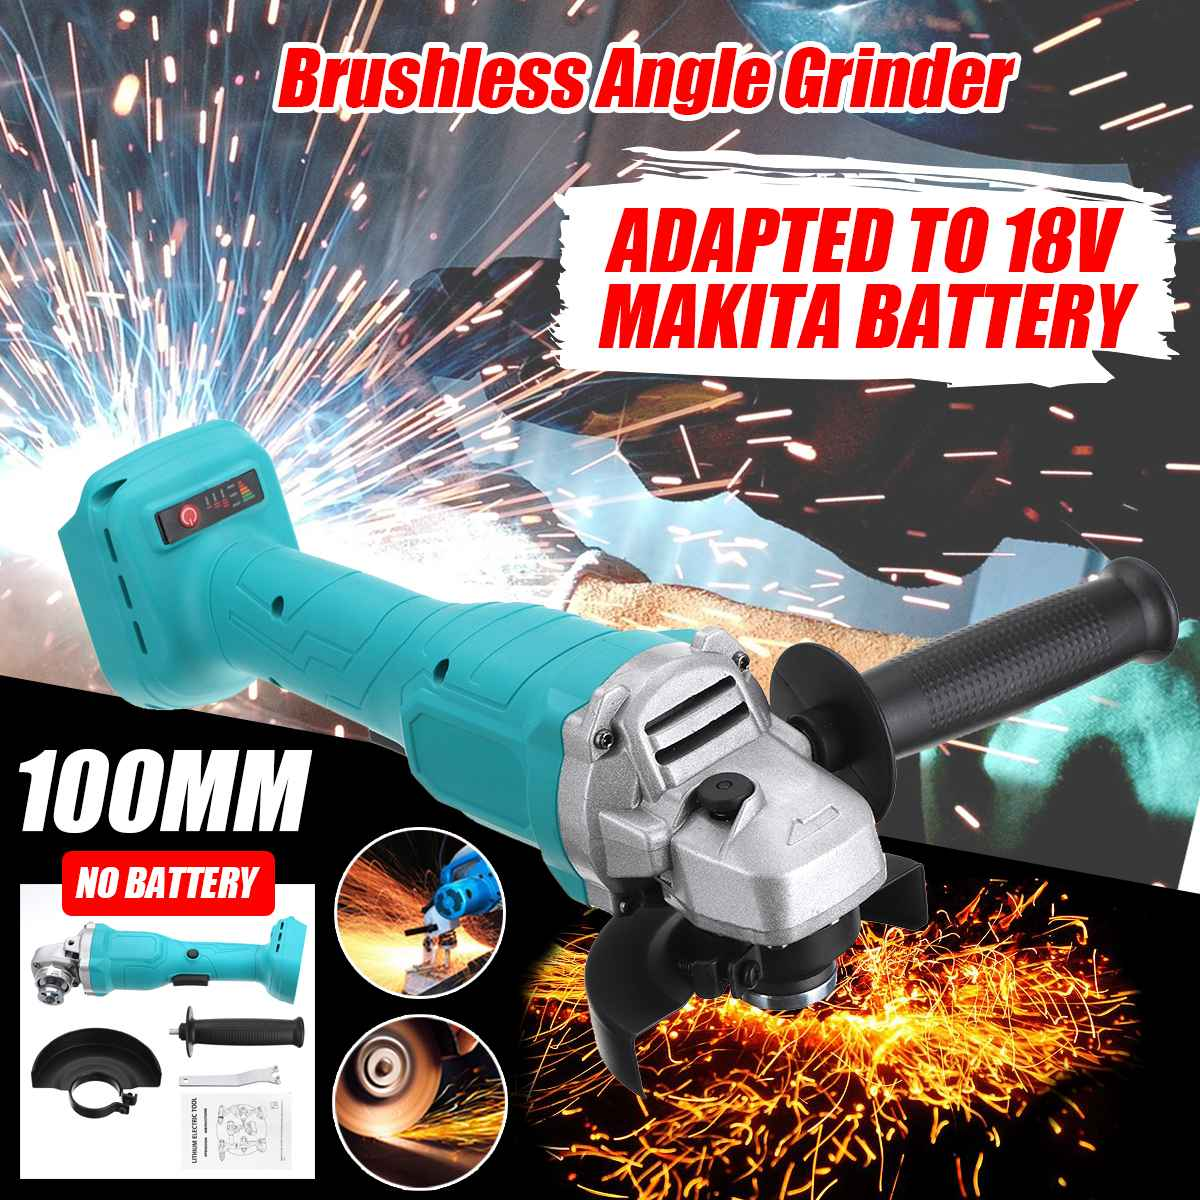 100mm Brushless Cordless Impact Angle Grinder Adapted For 18V Makita Battery Power Tools For Woodworking